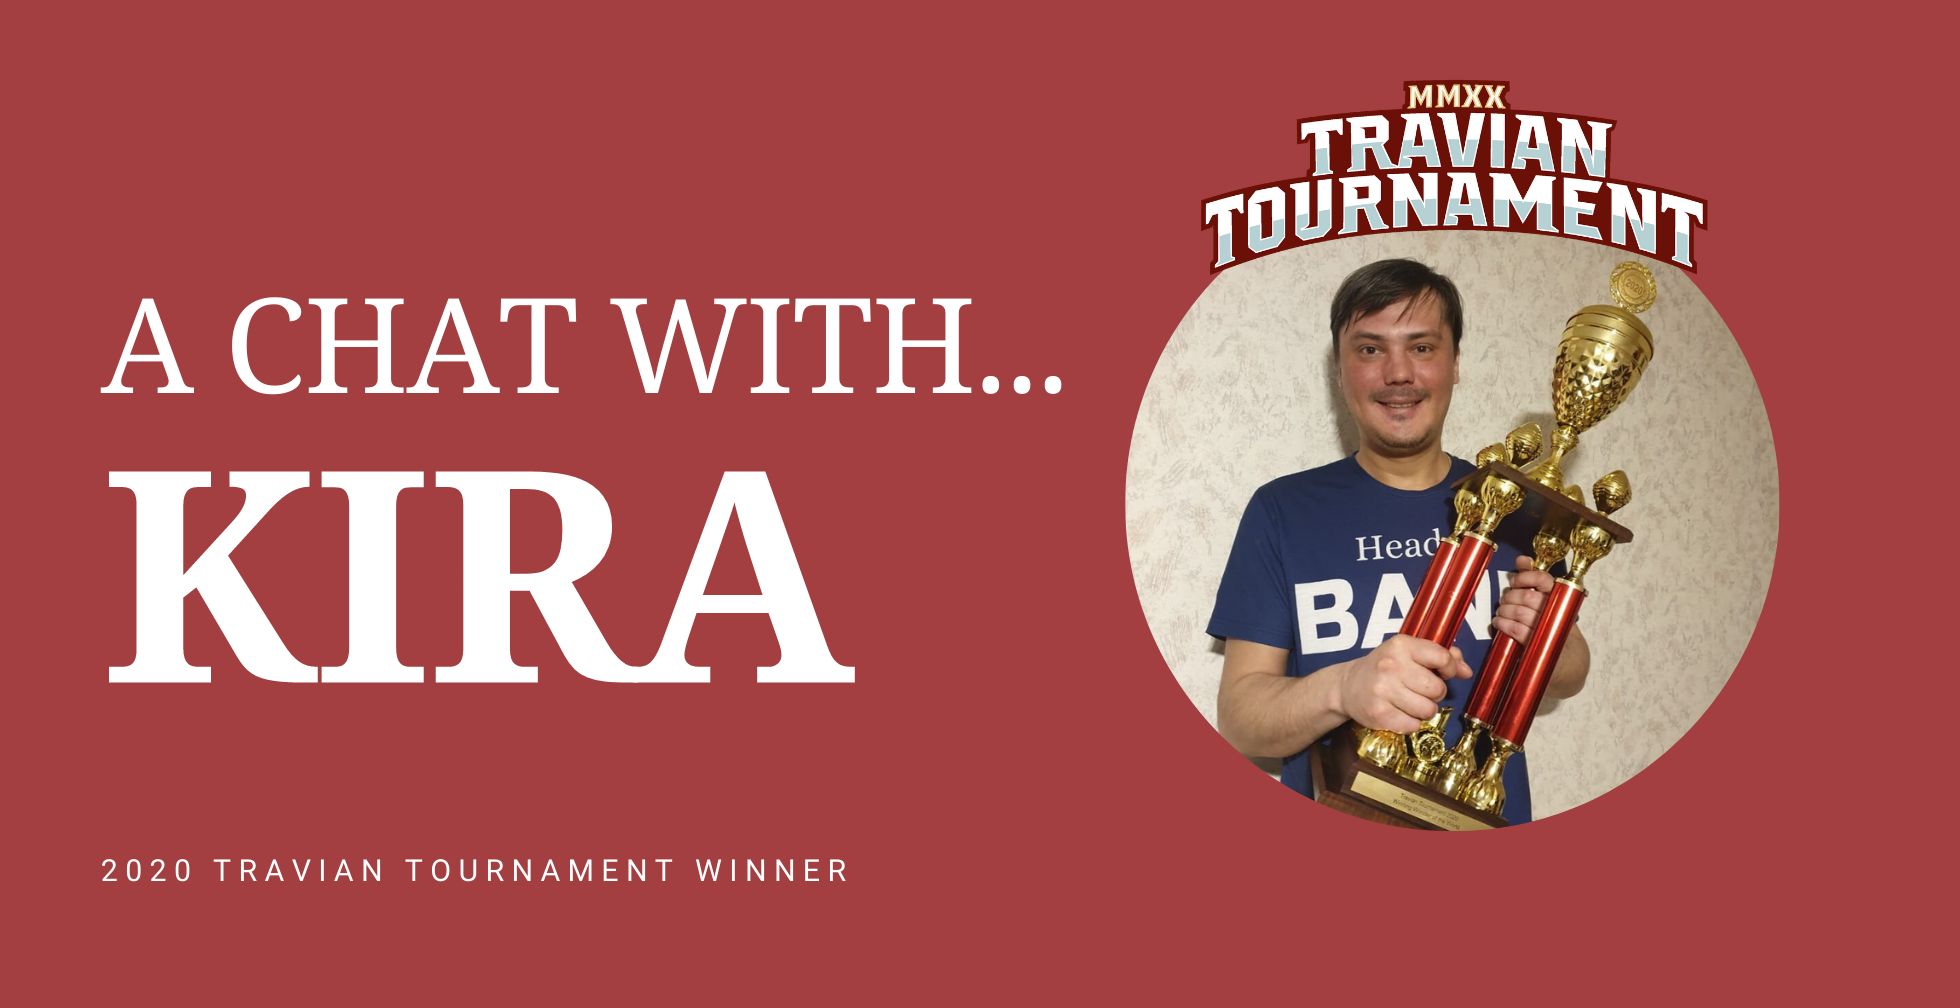 A Chat with Kira ~ Travian Tournament 2020 Winner